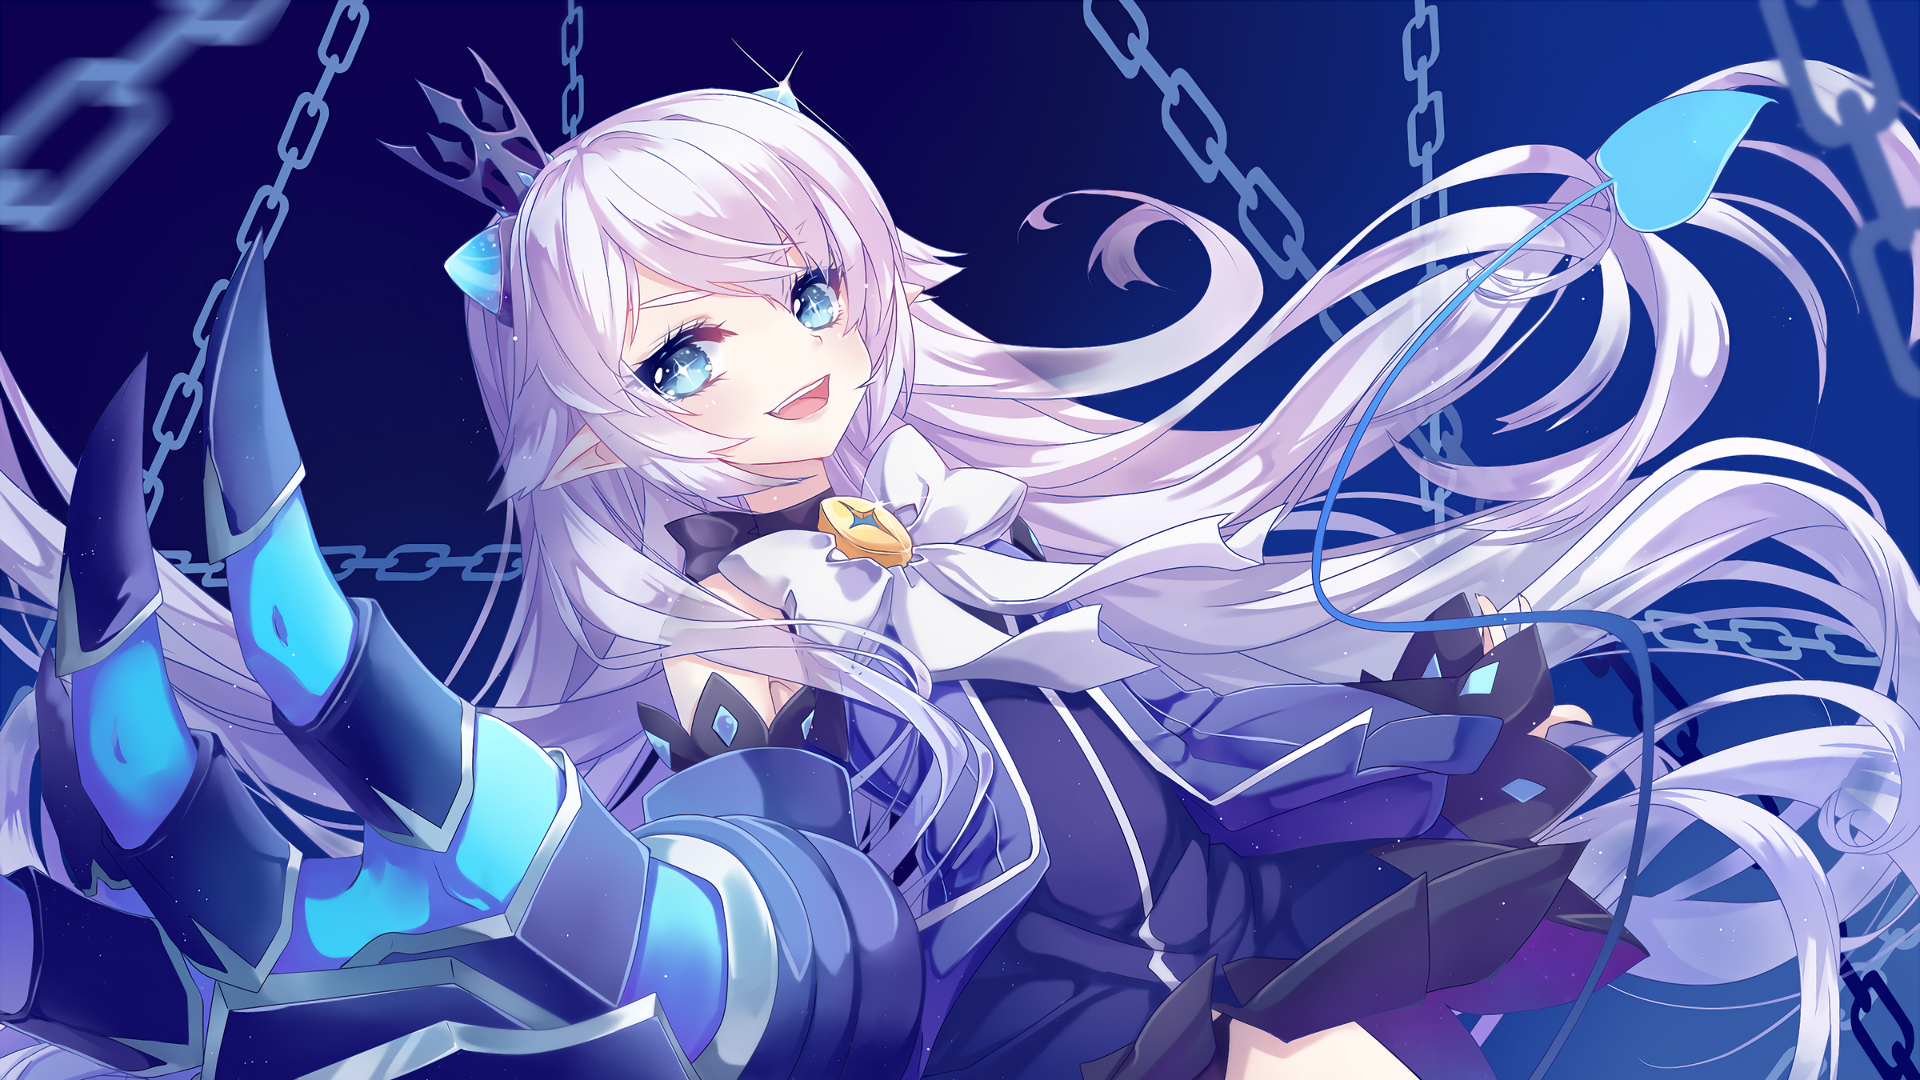 126 elsword hd wallpapers background images wallpaper abyss hd wallpaper background image id608643 1920x1080 video game elsword voltagebd Image collections